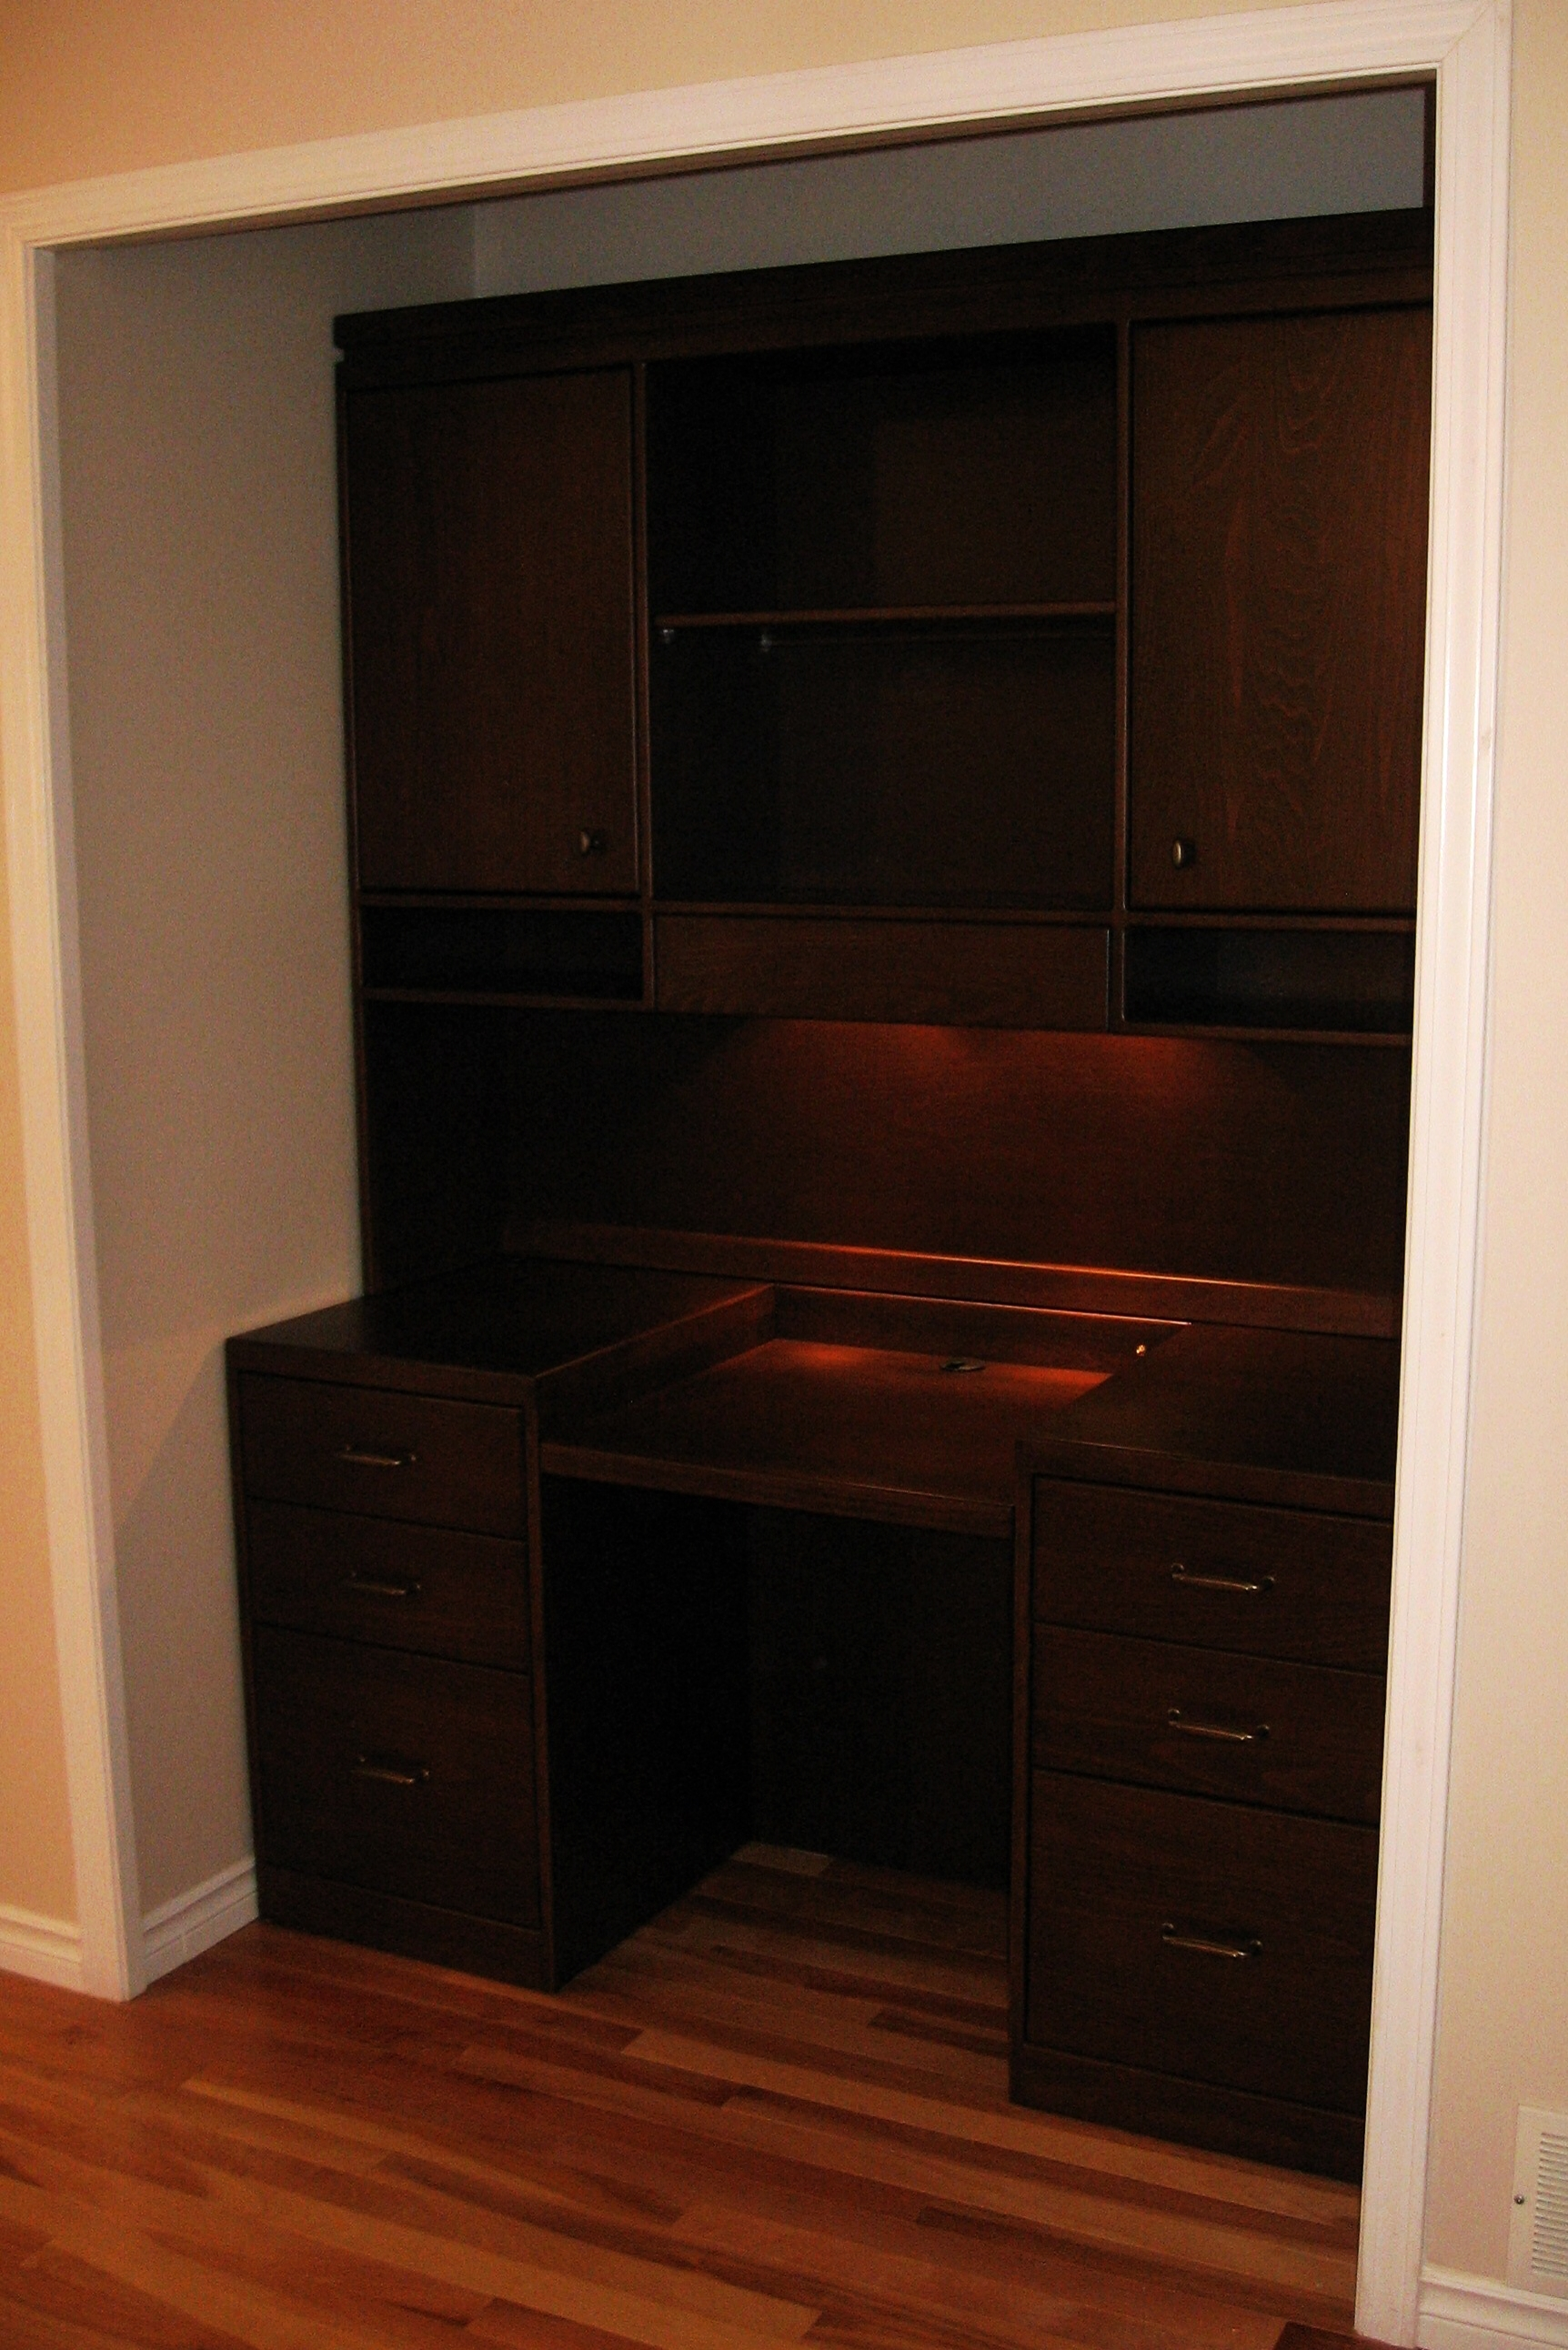 built-in-computer-desk-and-upper-storage-cabinetry.JPG